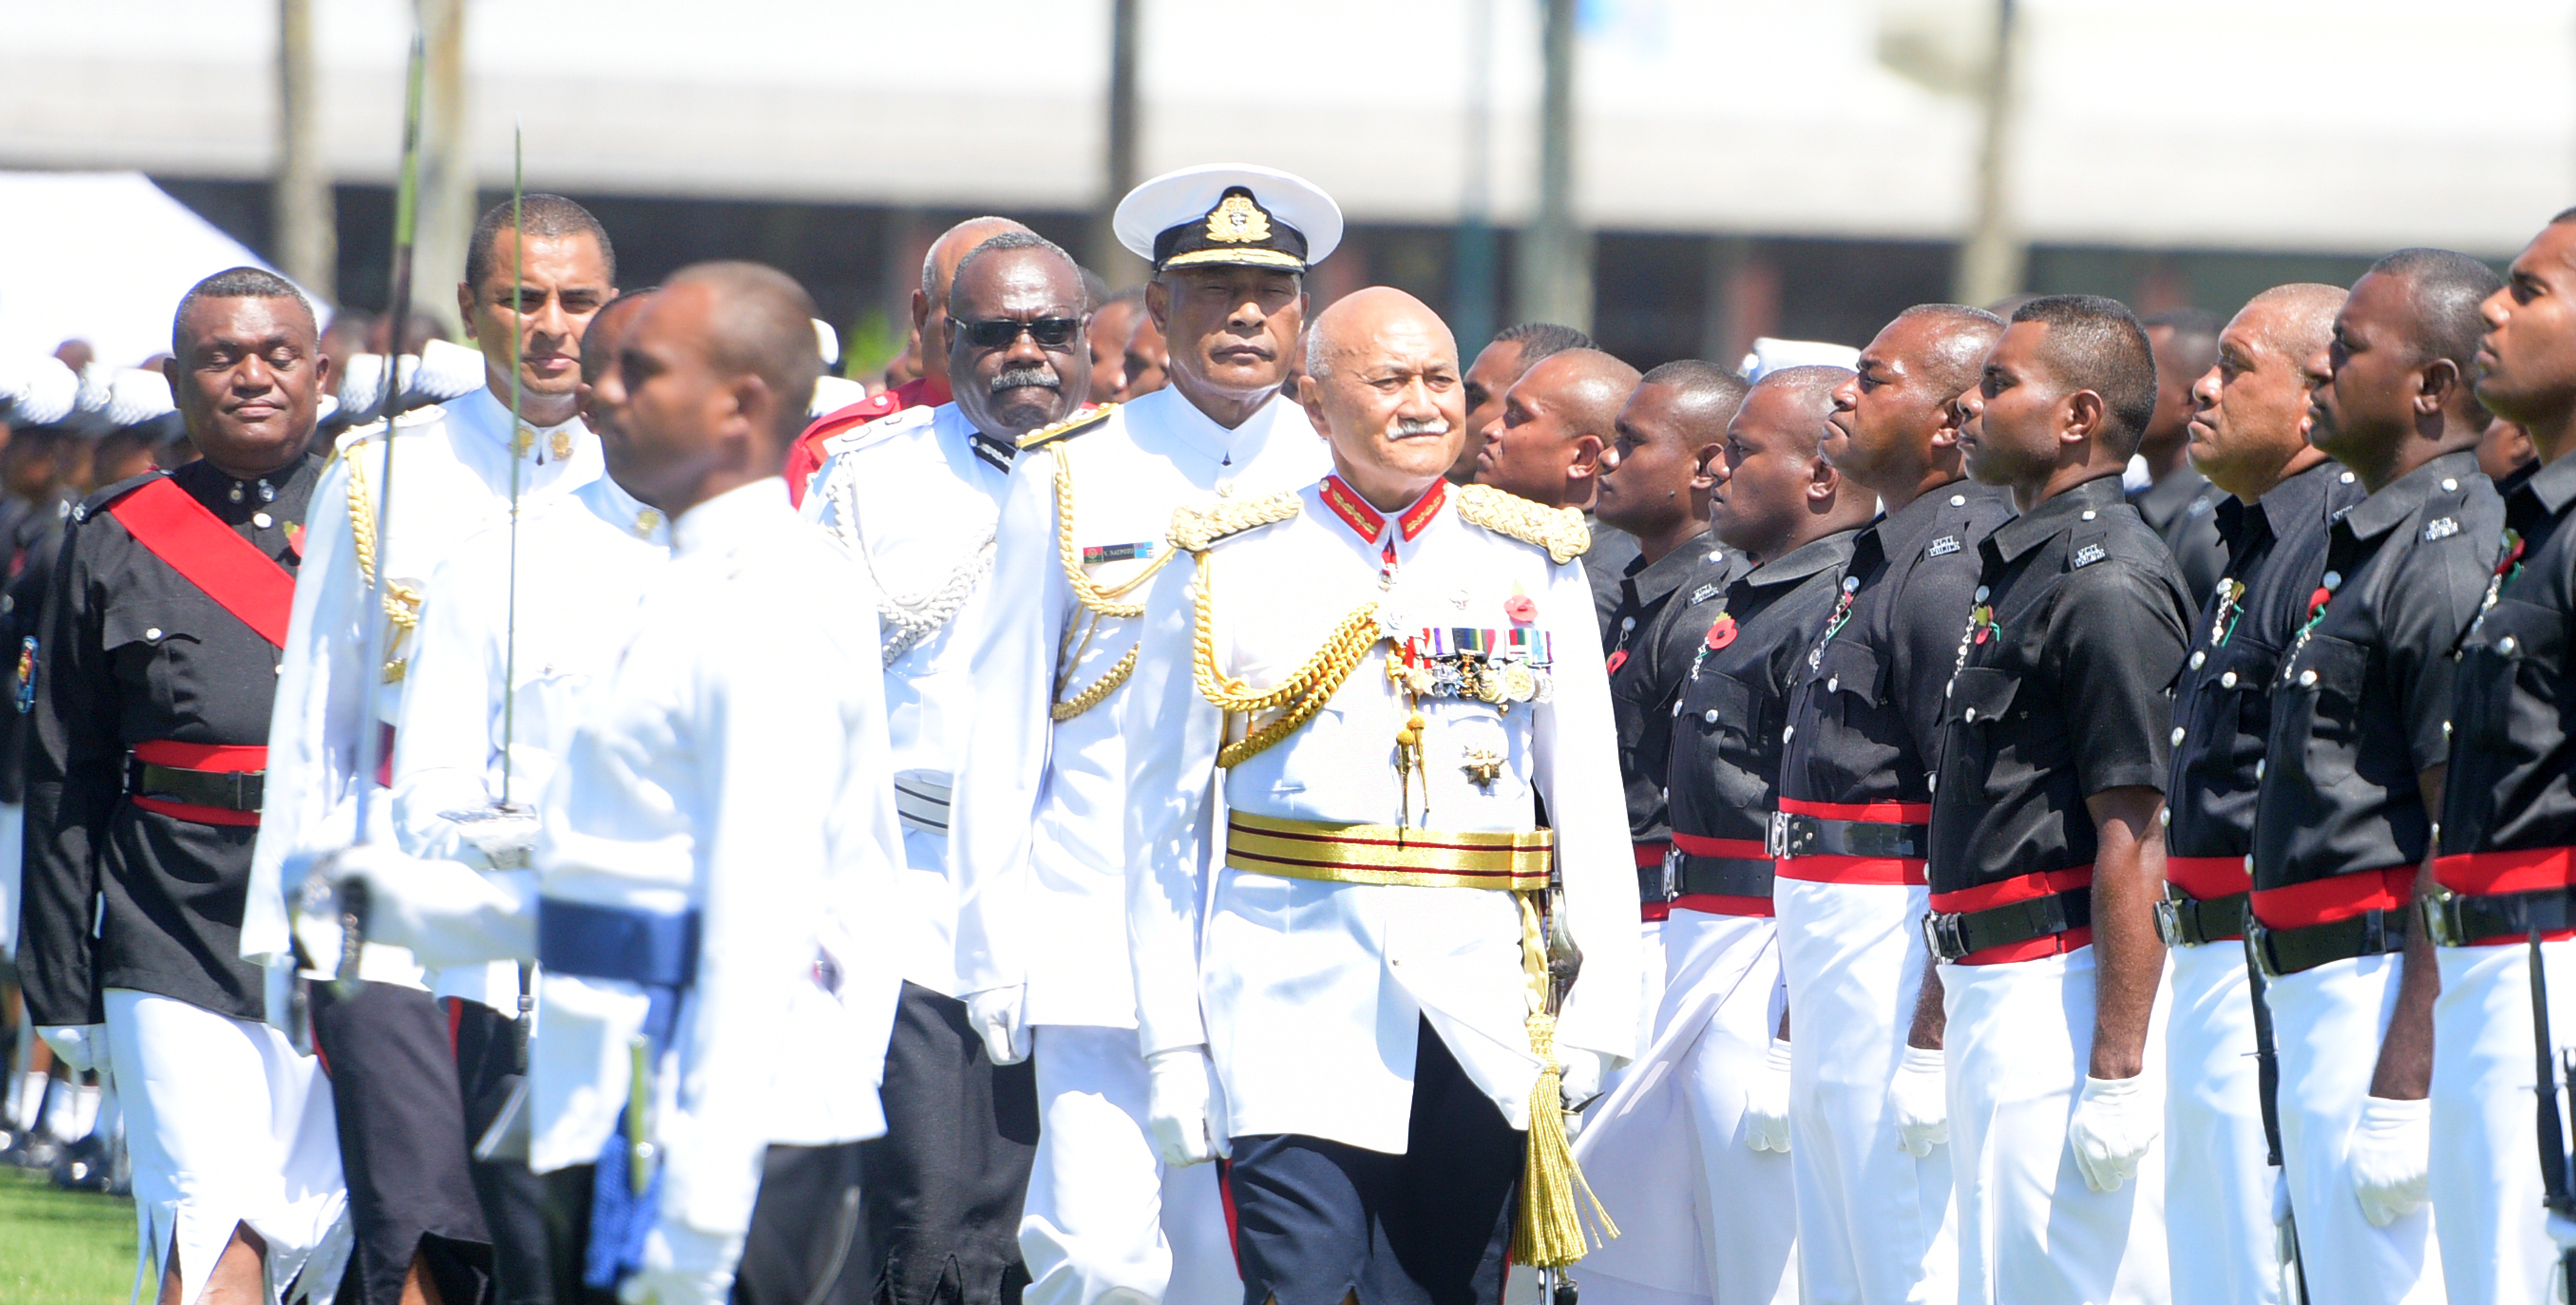 President and Commander-in-Chief, Jioji Konrote followed by RFMF Commander, Rear Admiral Viliame Naupoto while inspecting the 50th anniversary of Independence commemorative medal during Fiji Day Parade at Albert Park on October 7, 2020. Photo: Ronald Kumar.